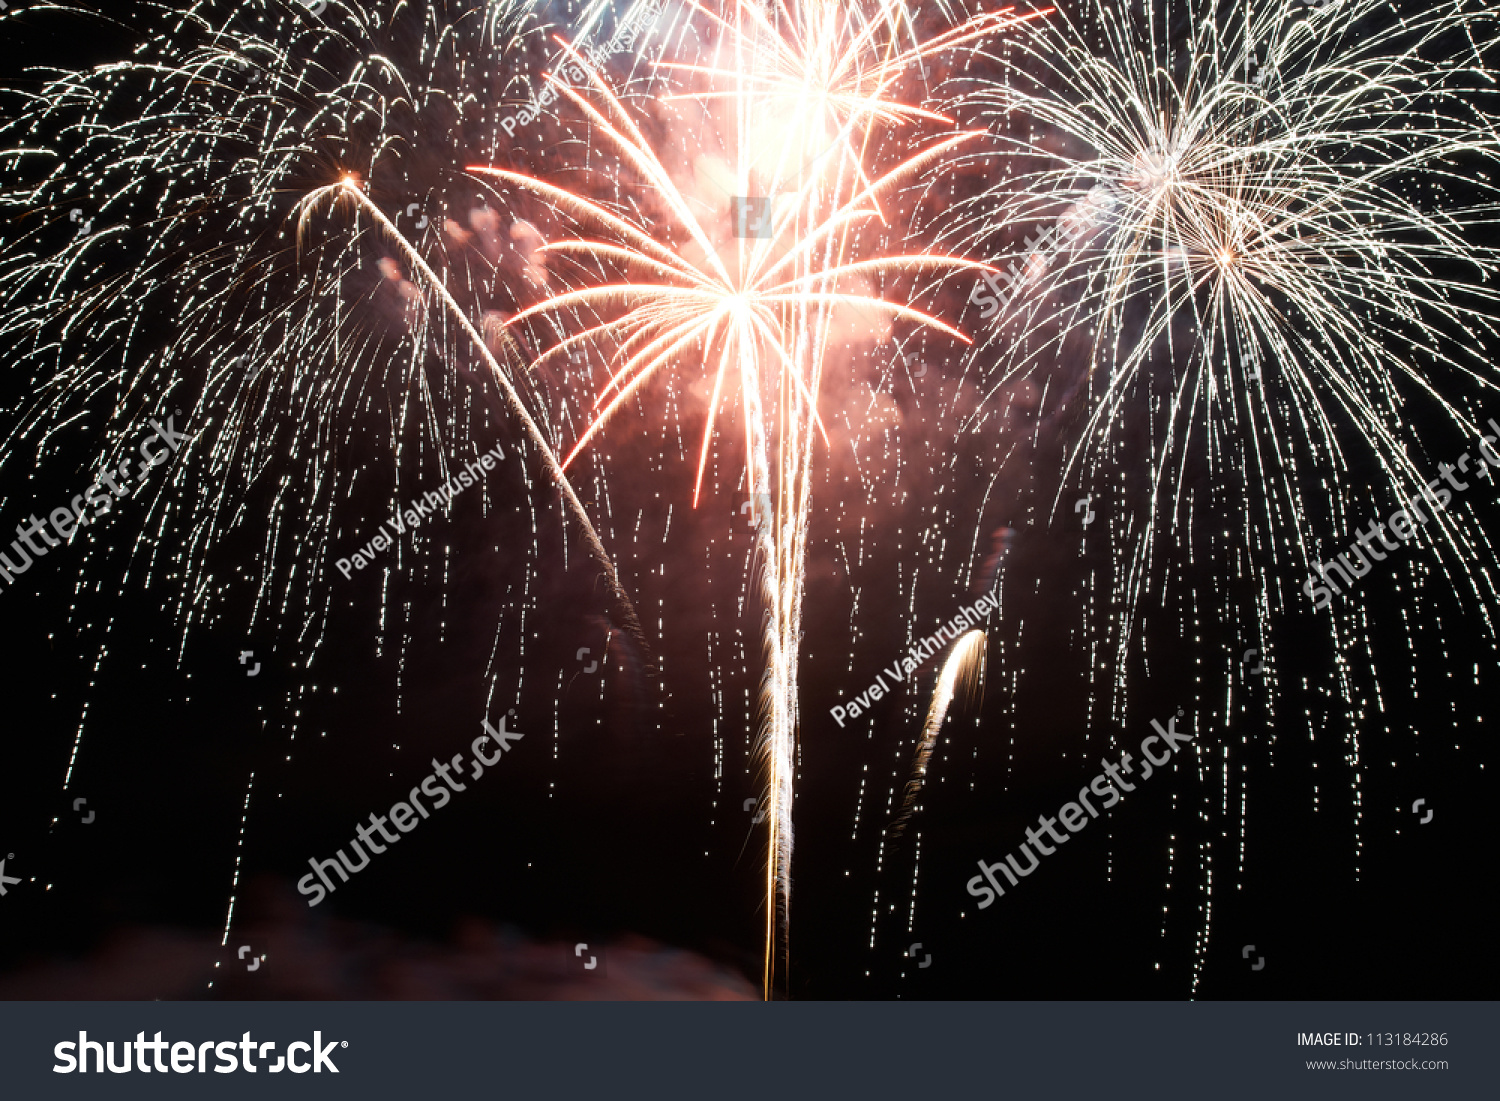 Red Fireworks Free Stock Photo: Red Purple Colorful Holiday Fireworks On Stock Photo